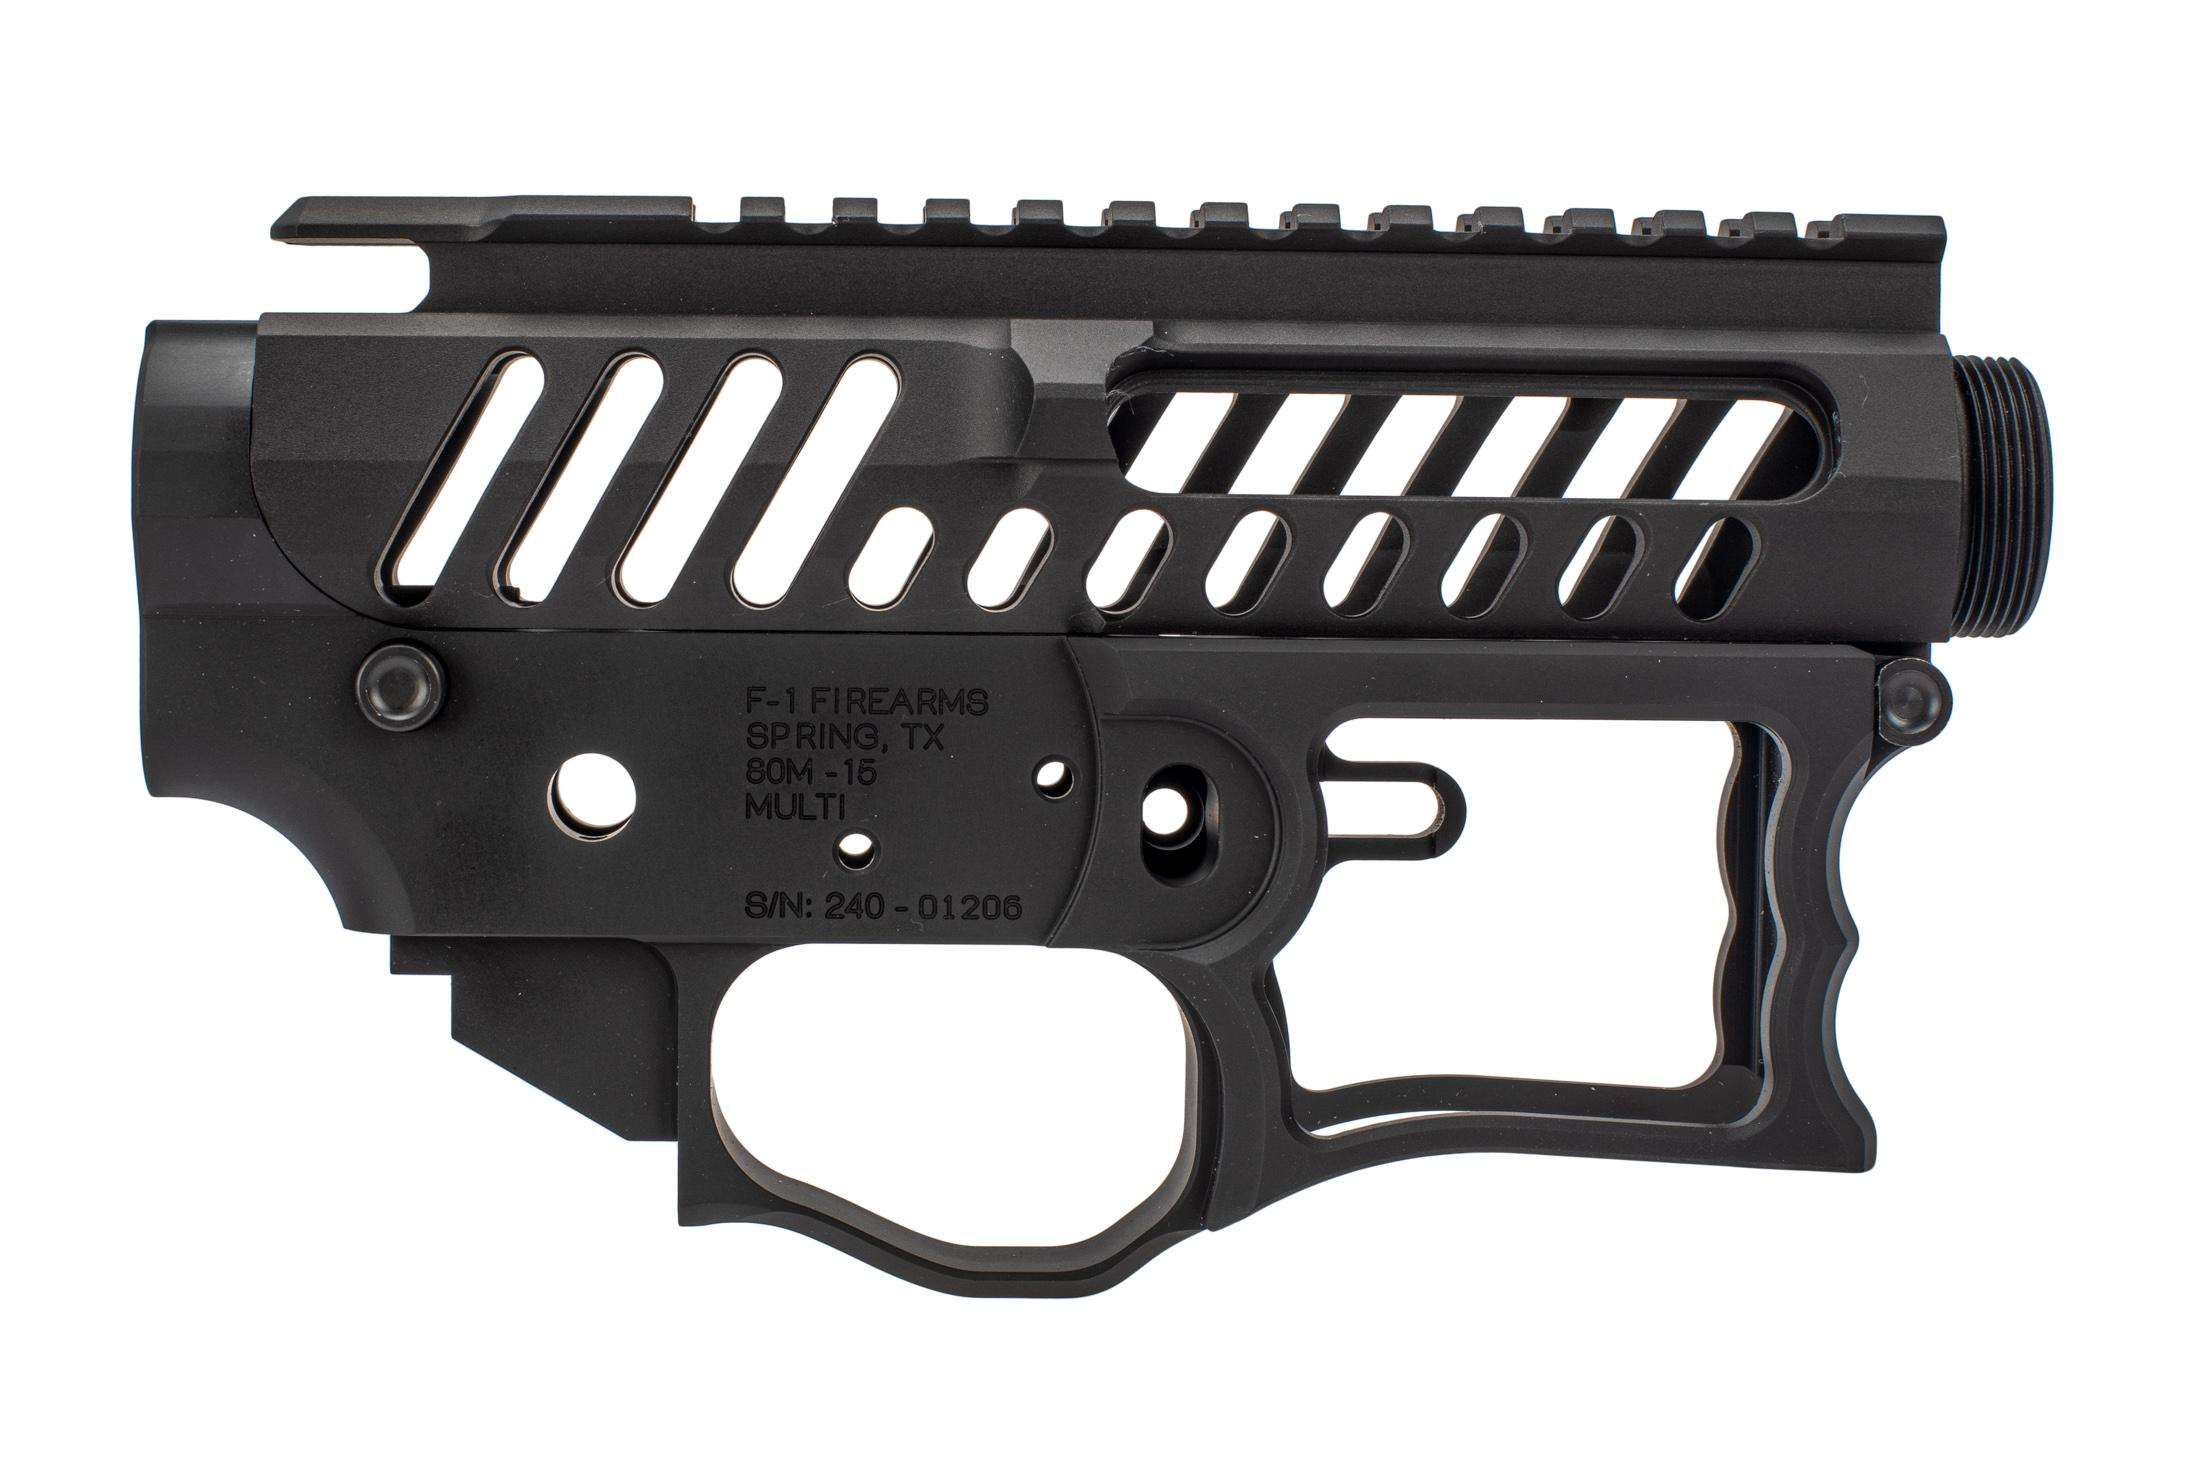 F 1Firearms UDR15 Style 1 AR15 receiver set features a fully skeletonized design